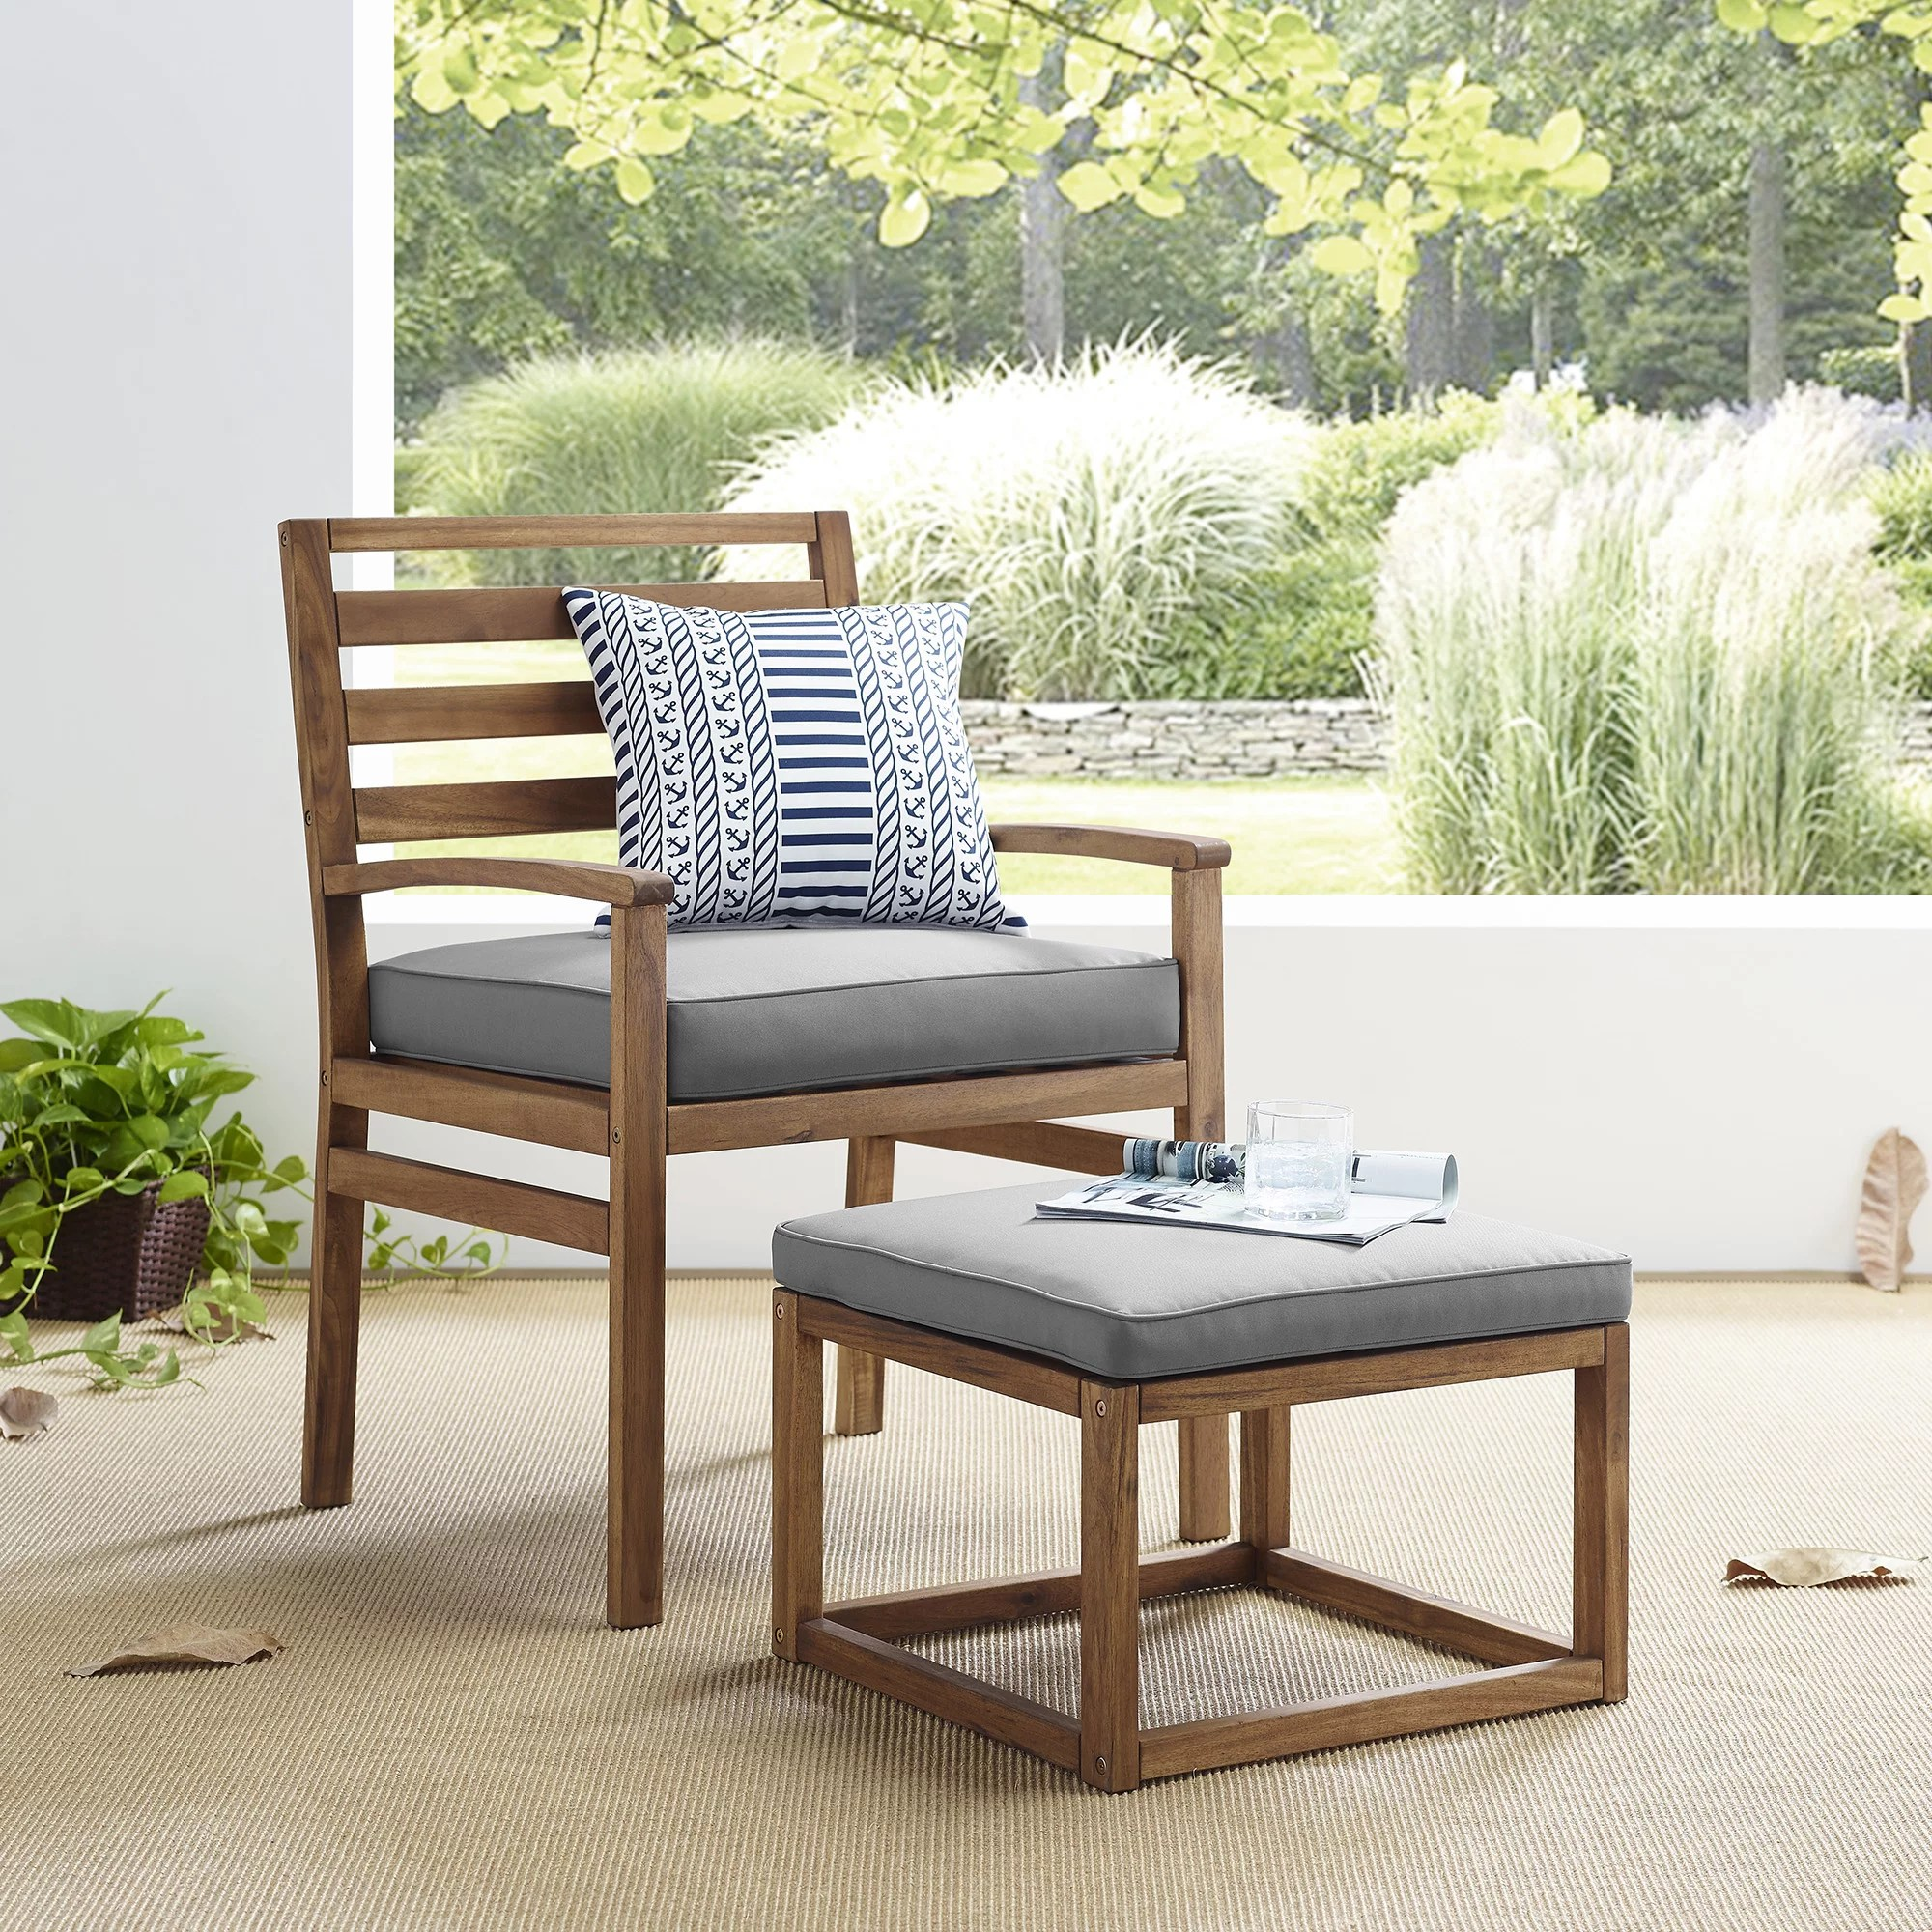 manor park acacia wood outdoor patio chair pull out ottoman brown grey